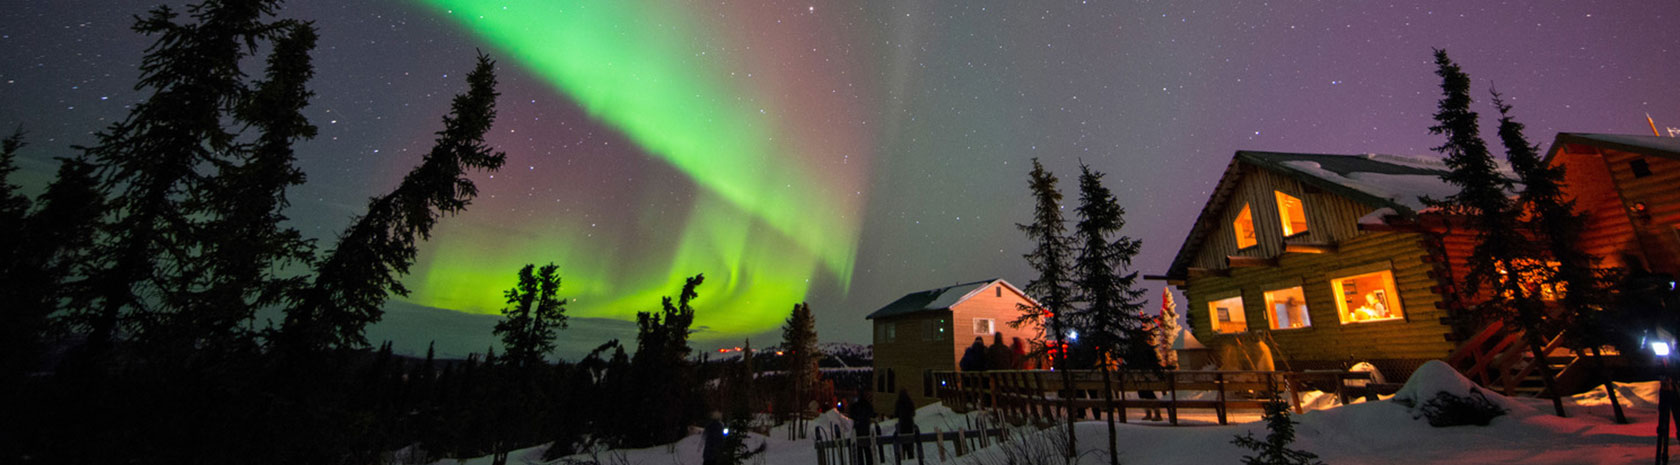 Multiple two story log cabins with people out front gazing at the Northern Lights in the night sky